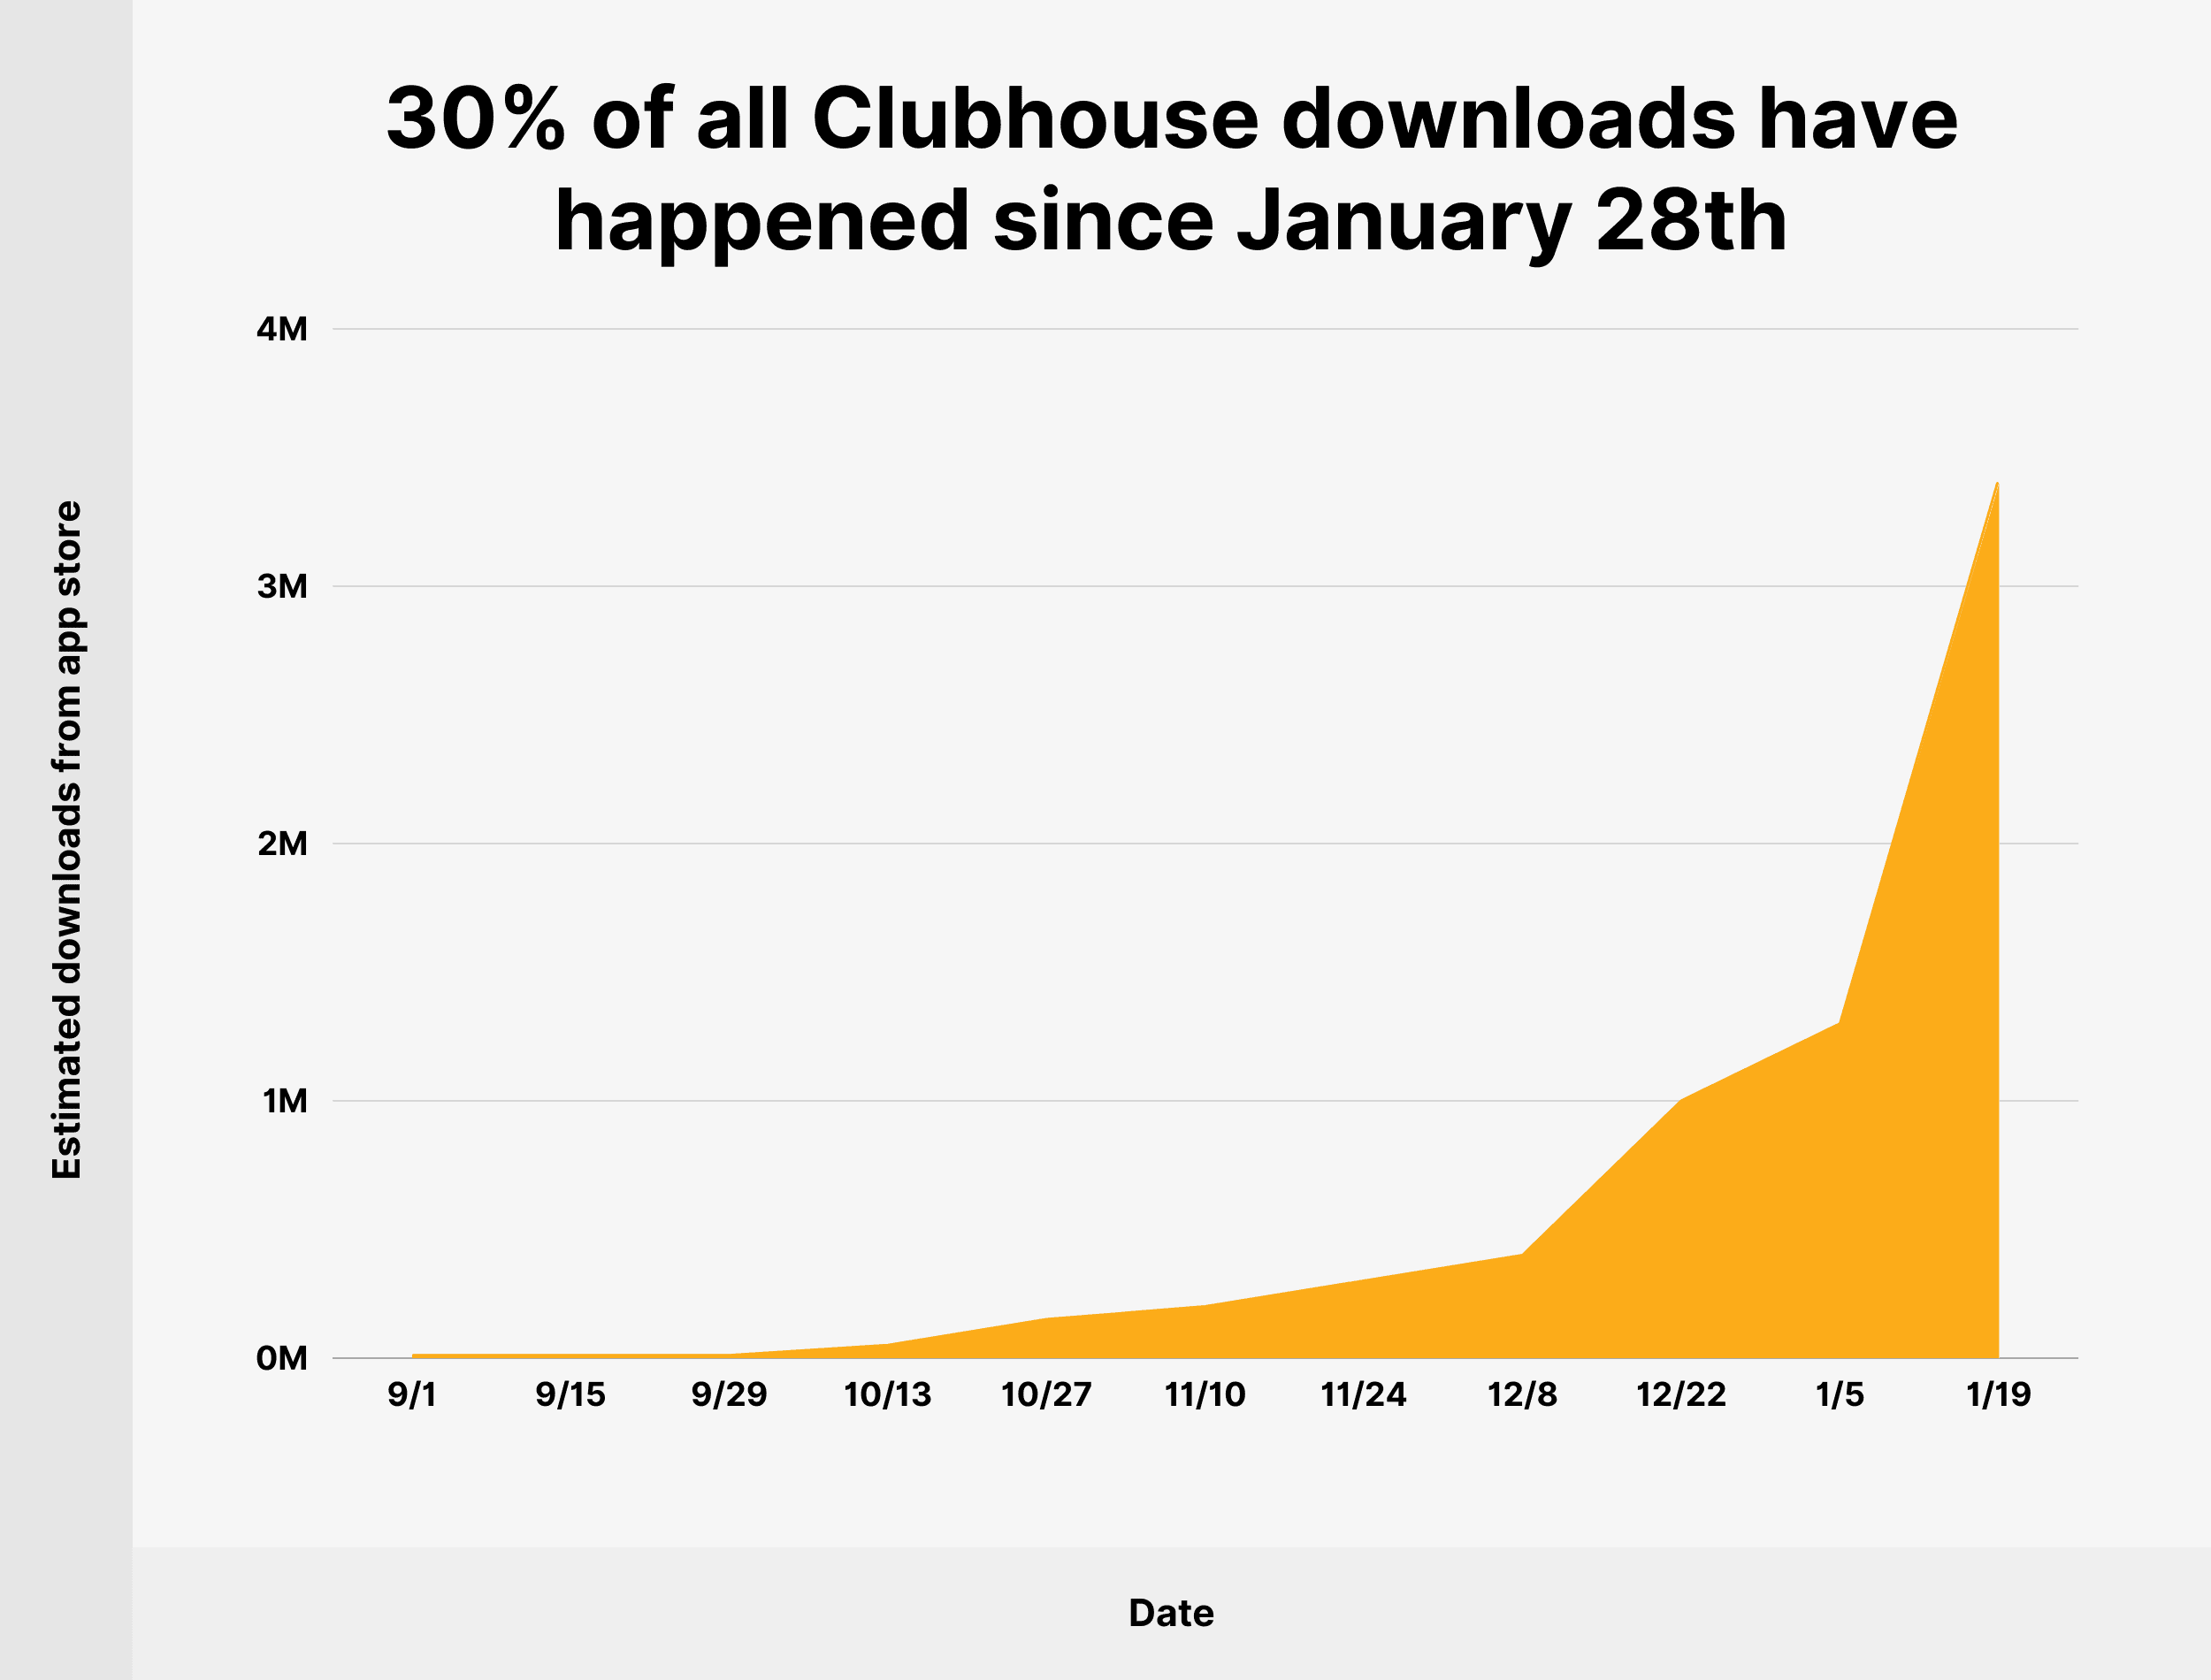 30% of all Clubhouse downloads happened after January 28th